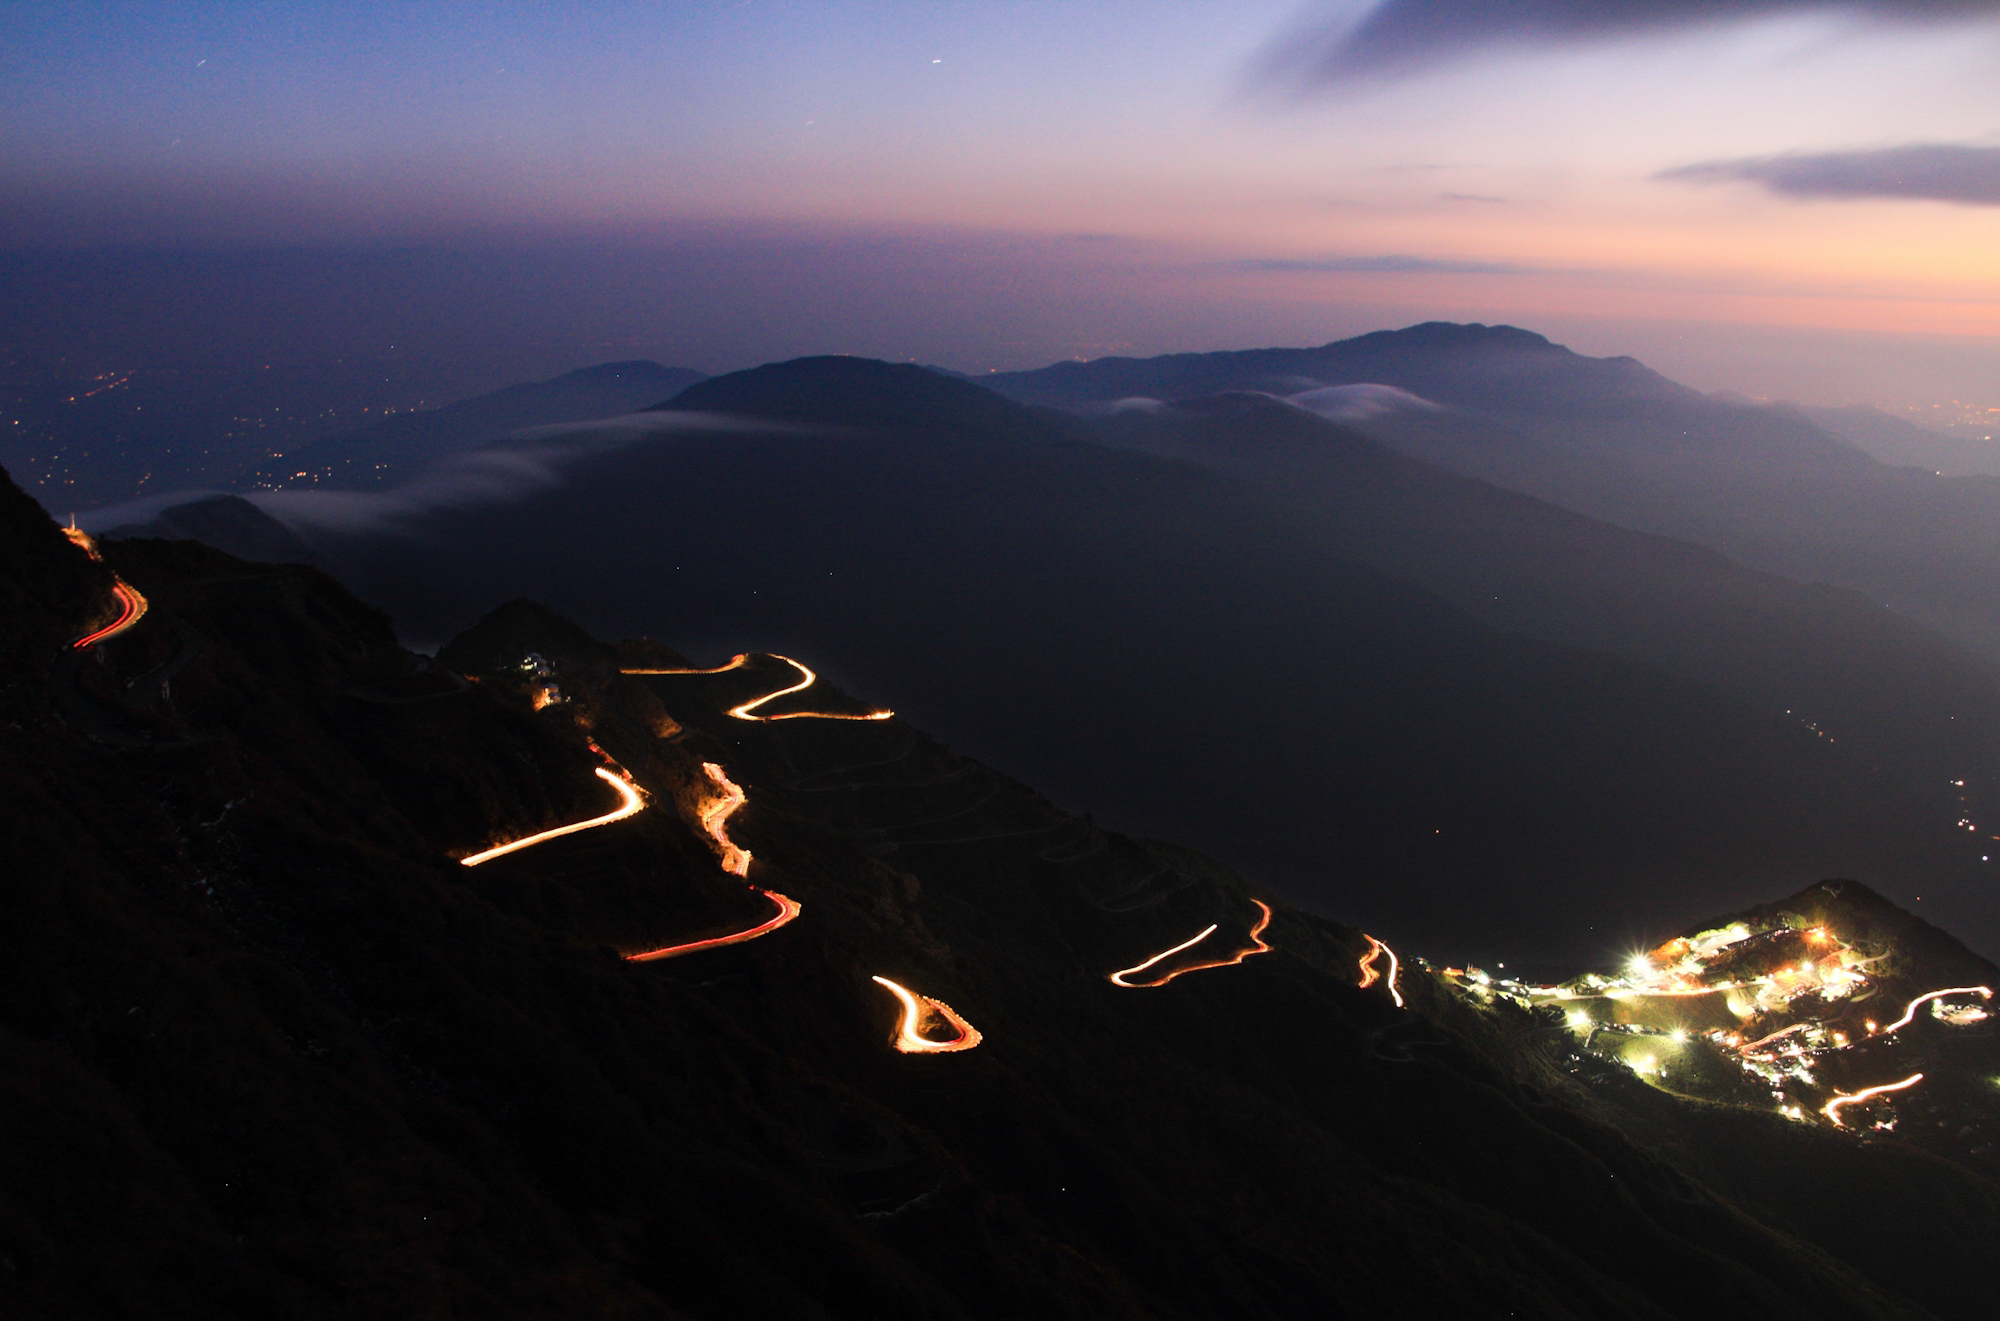 Silk route is one of the oldest and longest route made by mankind and now this route is heaven for tourists. After a long wait I found some bikers travelling the silk. I kept my shutter on from thambi viewpoint. The sunset from this viewpoint is heavenly and the whole light trail made it more lively.